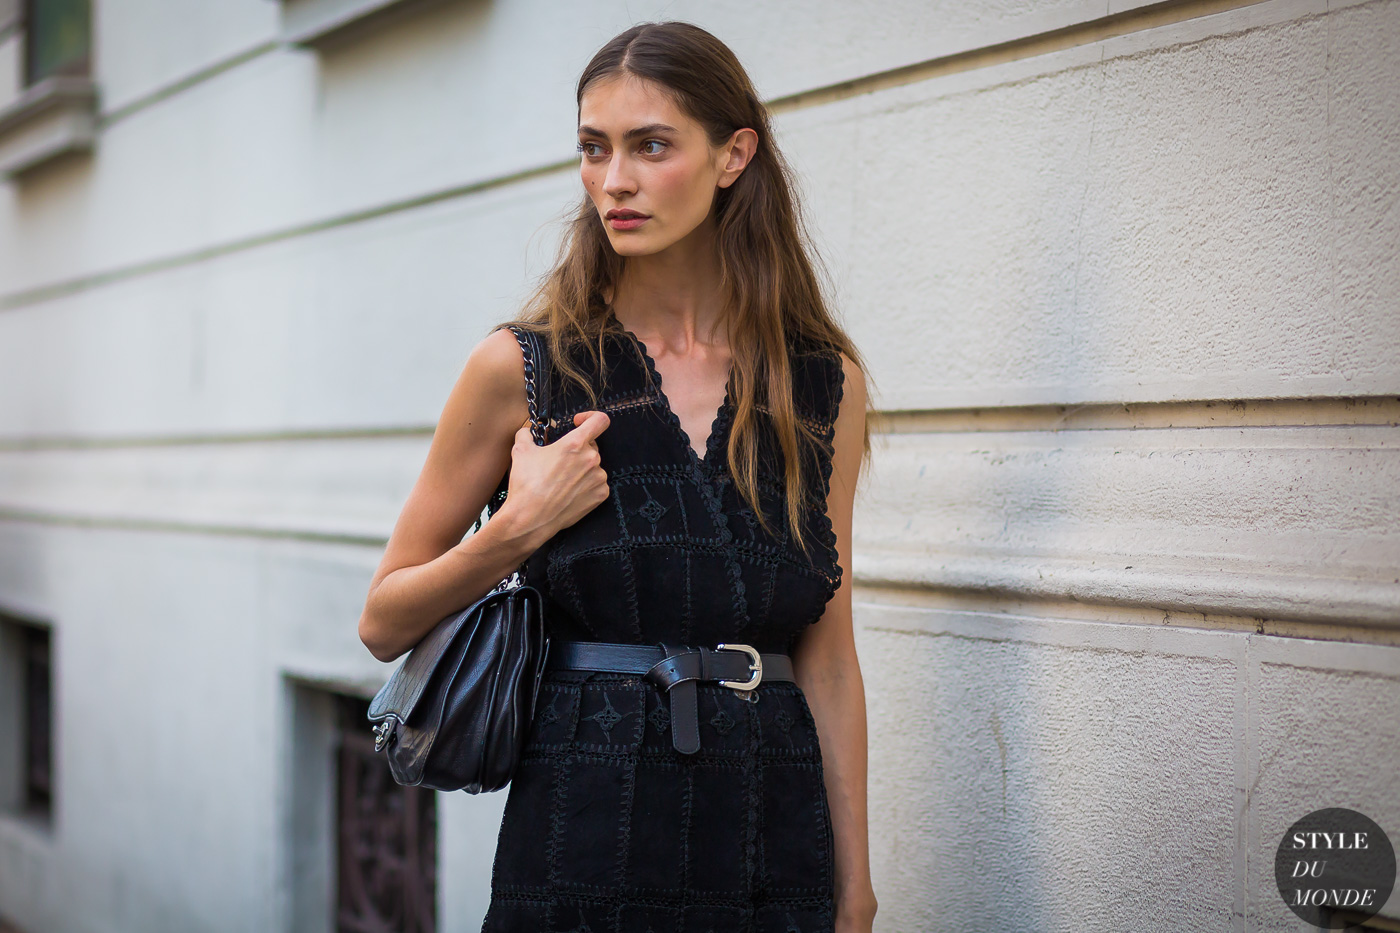 marine-deleeuw-by-styledumonde-street-style-fashion-photography